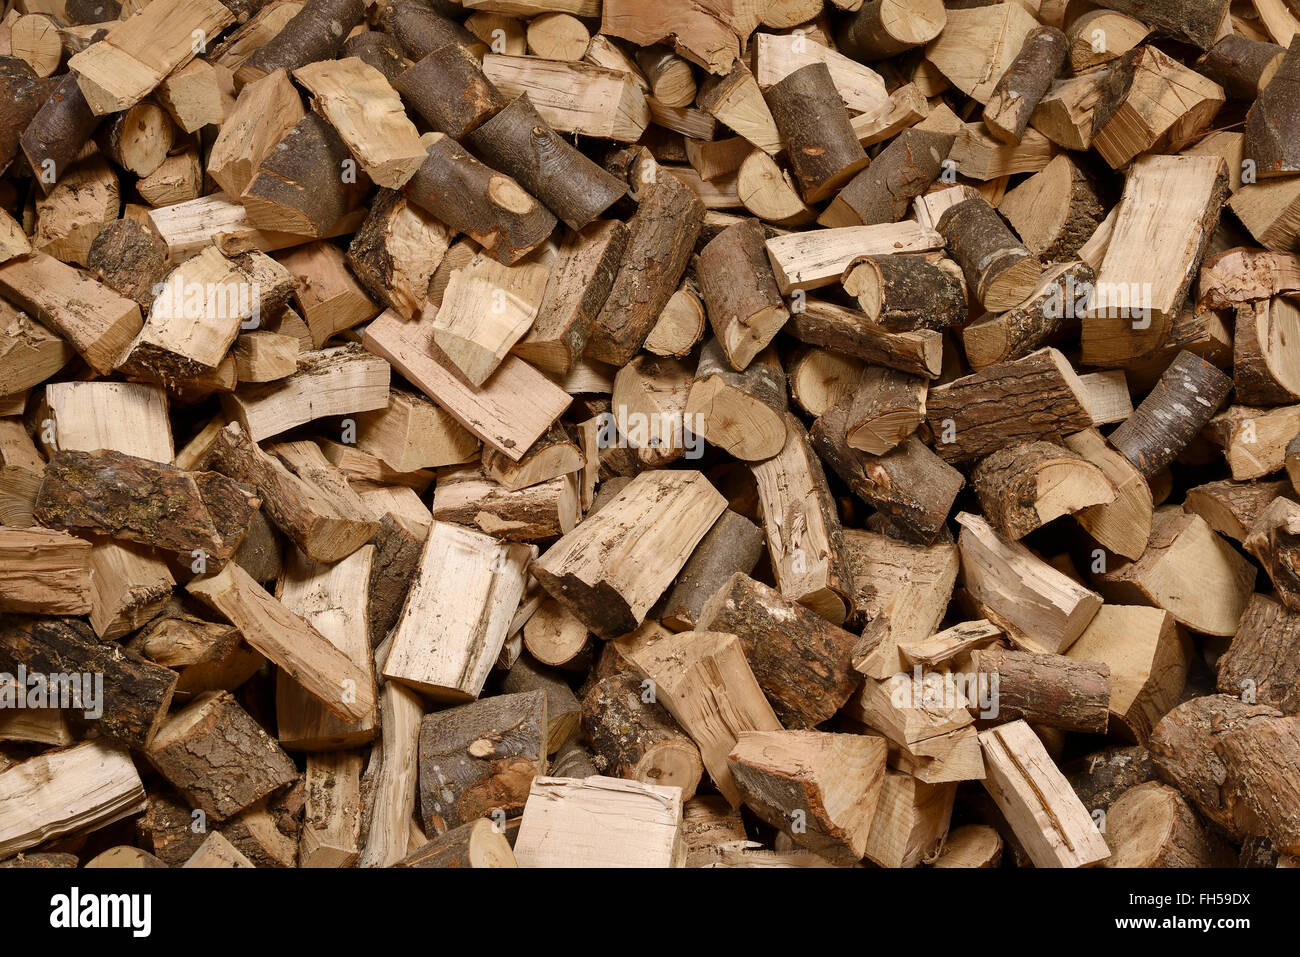 Abstract background of chopped wood logs - Stock Image